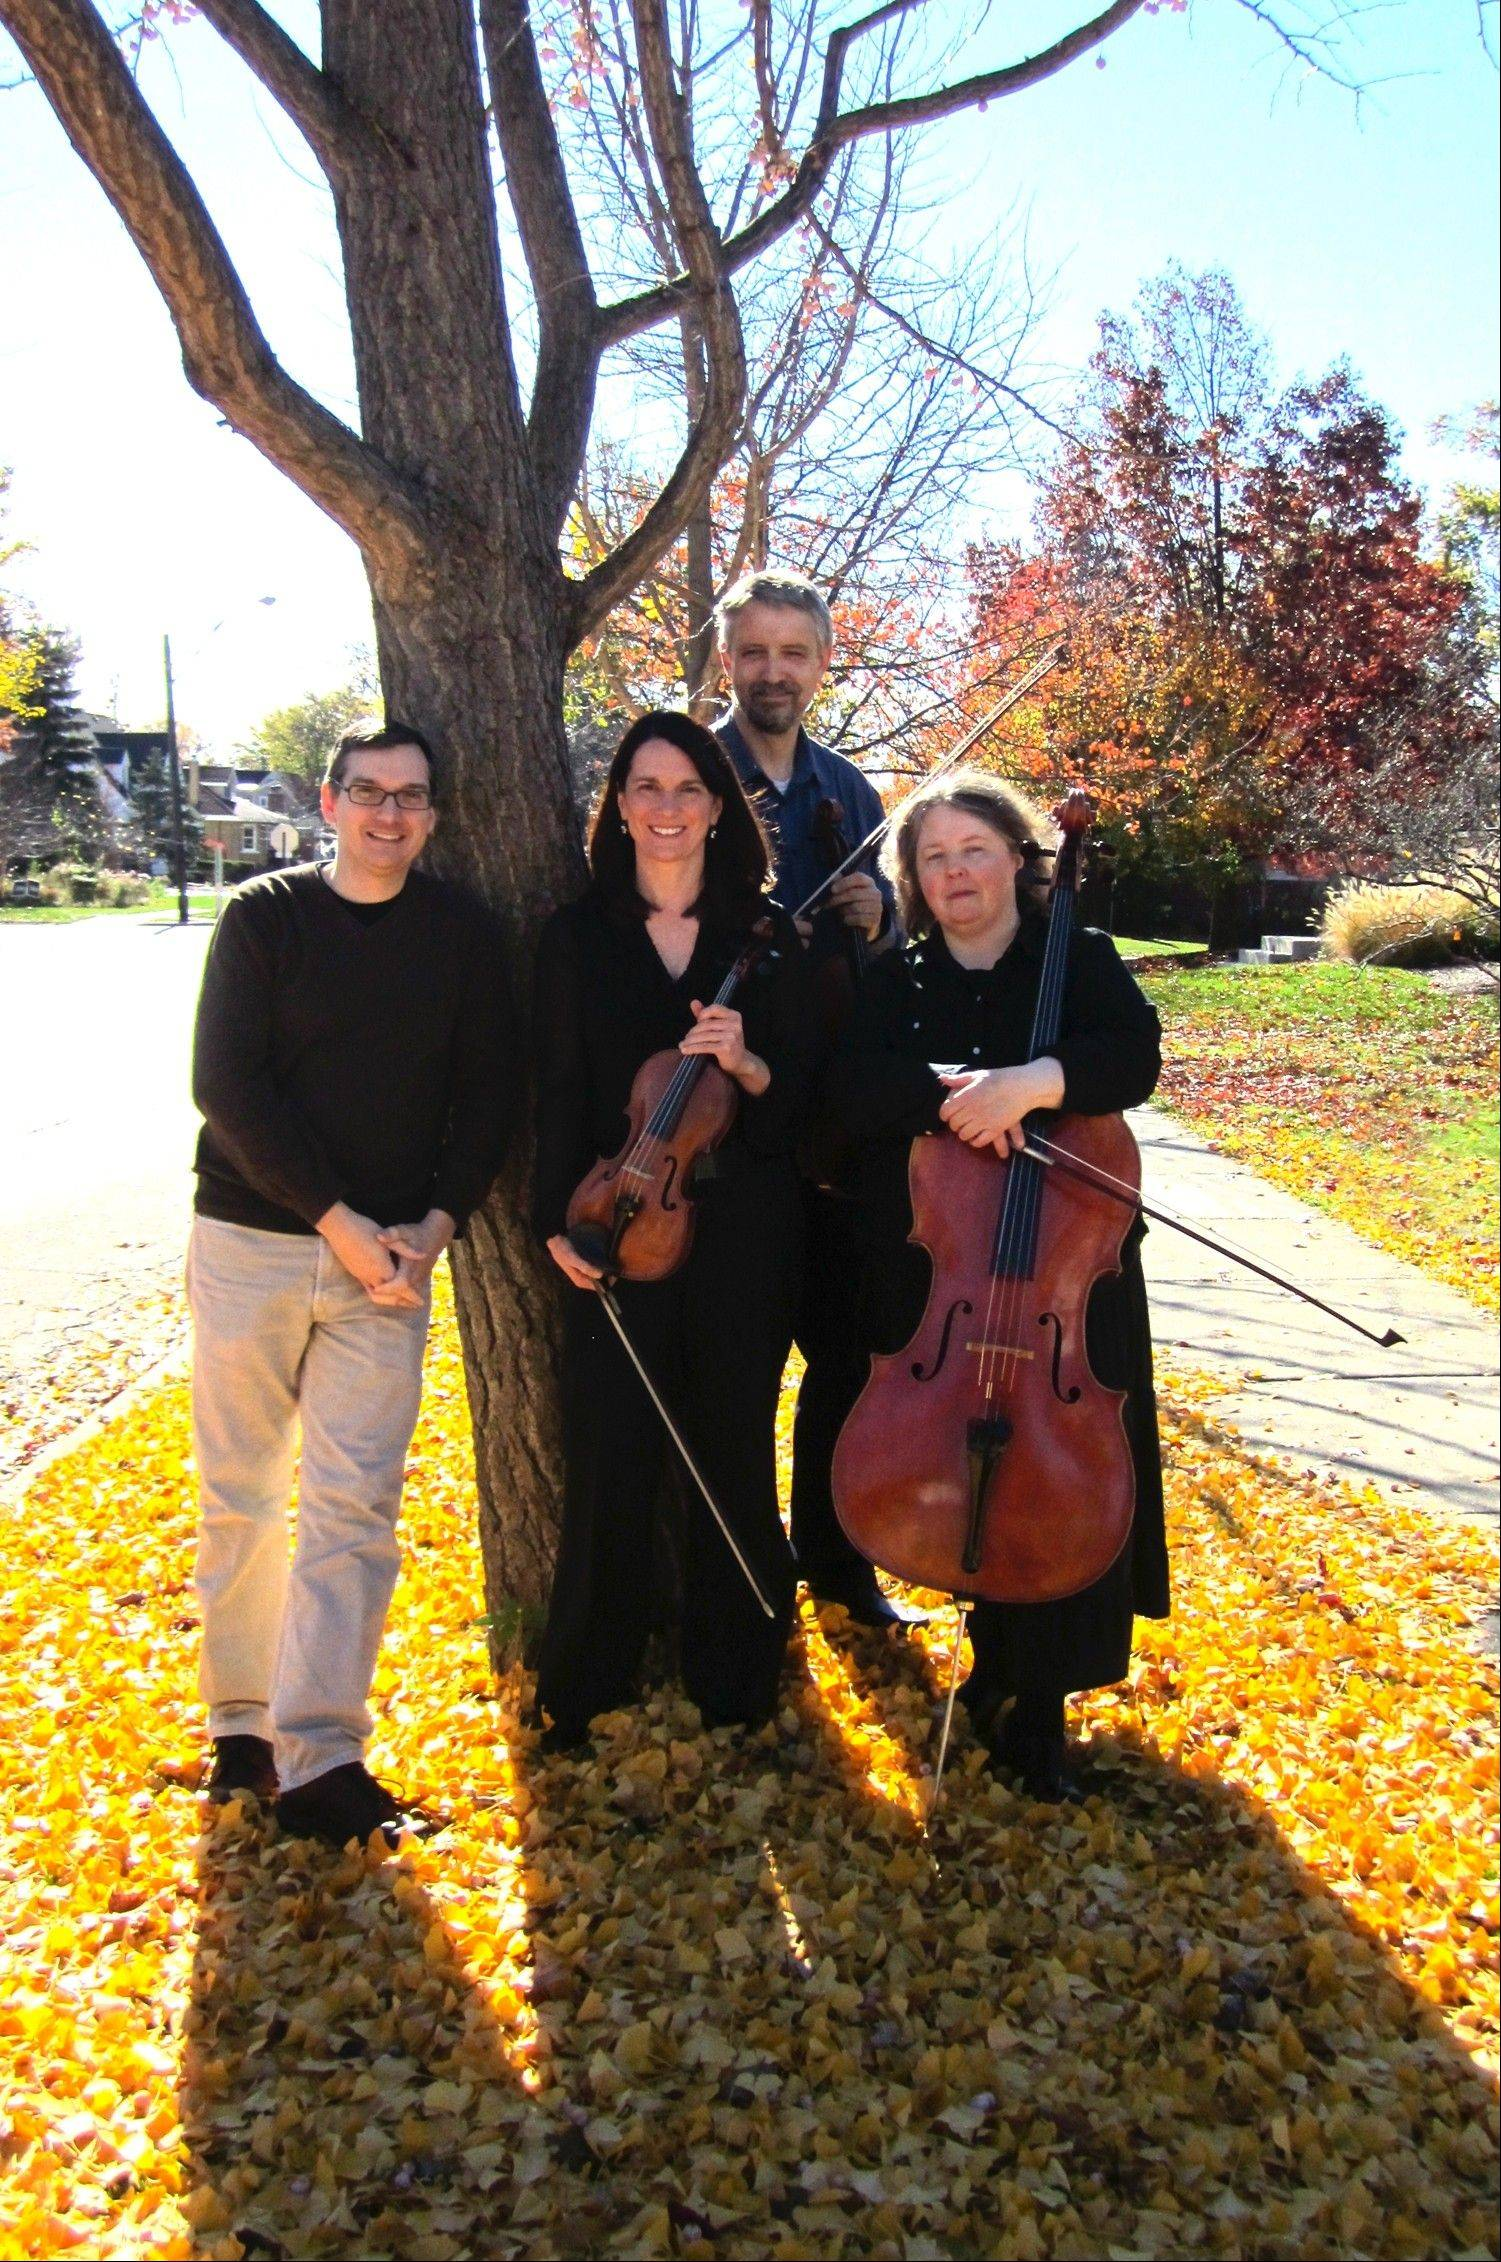 The Chicago Philharmonic Chamber Players perform Schoenfield's Cafe Music for Piano Trio and Faure's Piano Quartet No. 1 in a concert at St. Luke's Lutheran Church in Park Ridge.